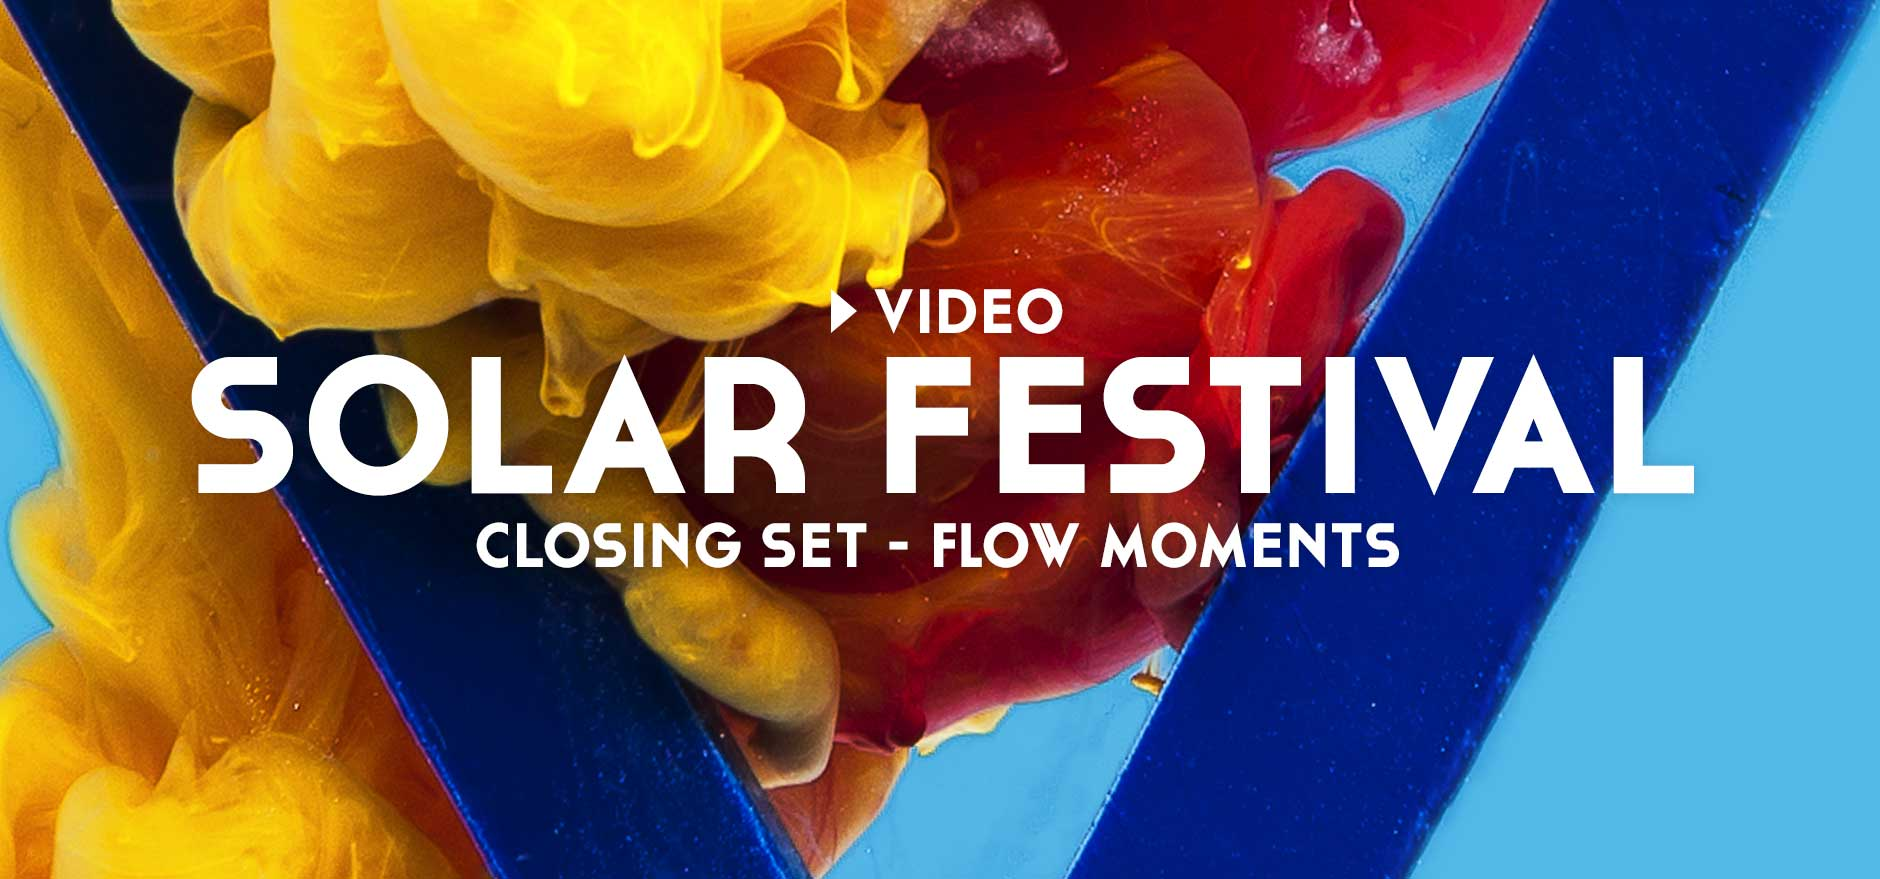 Video - FLOW moments